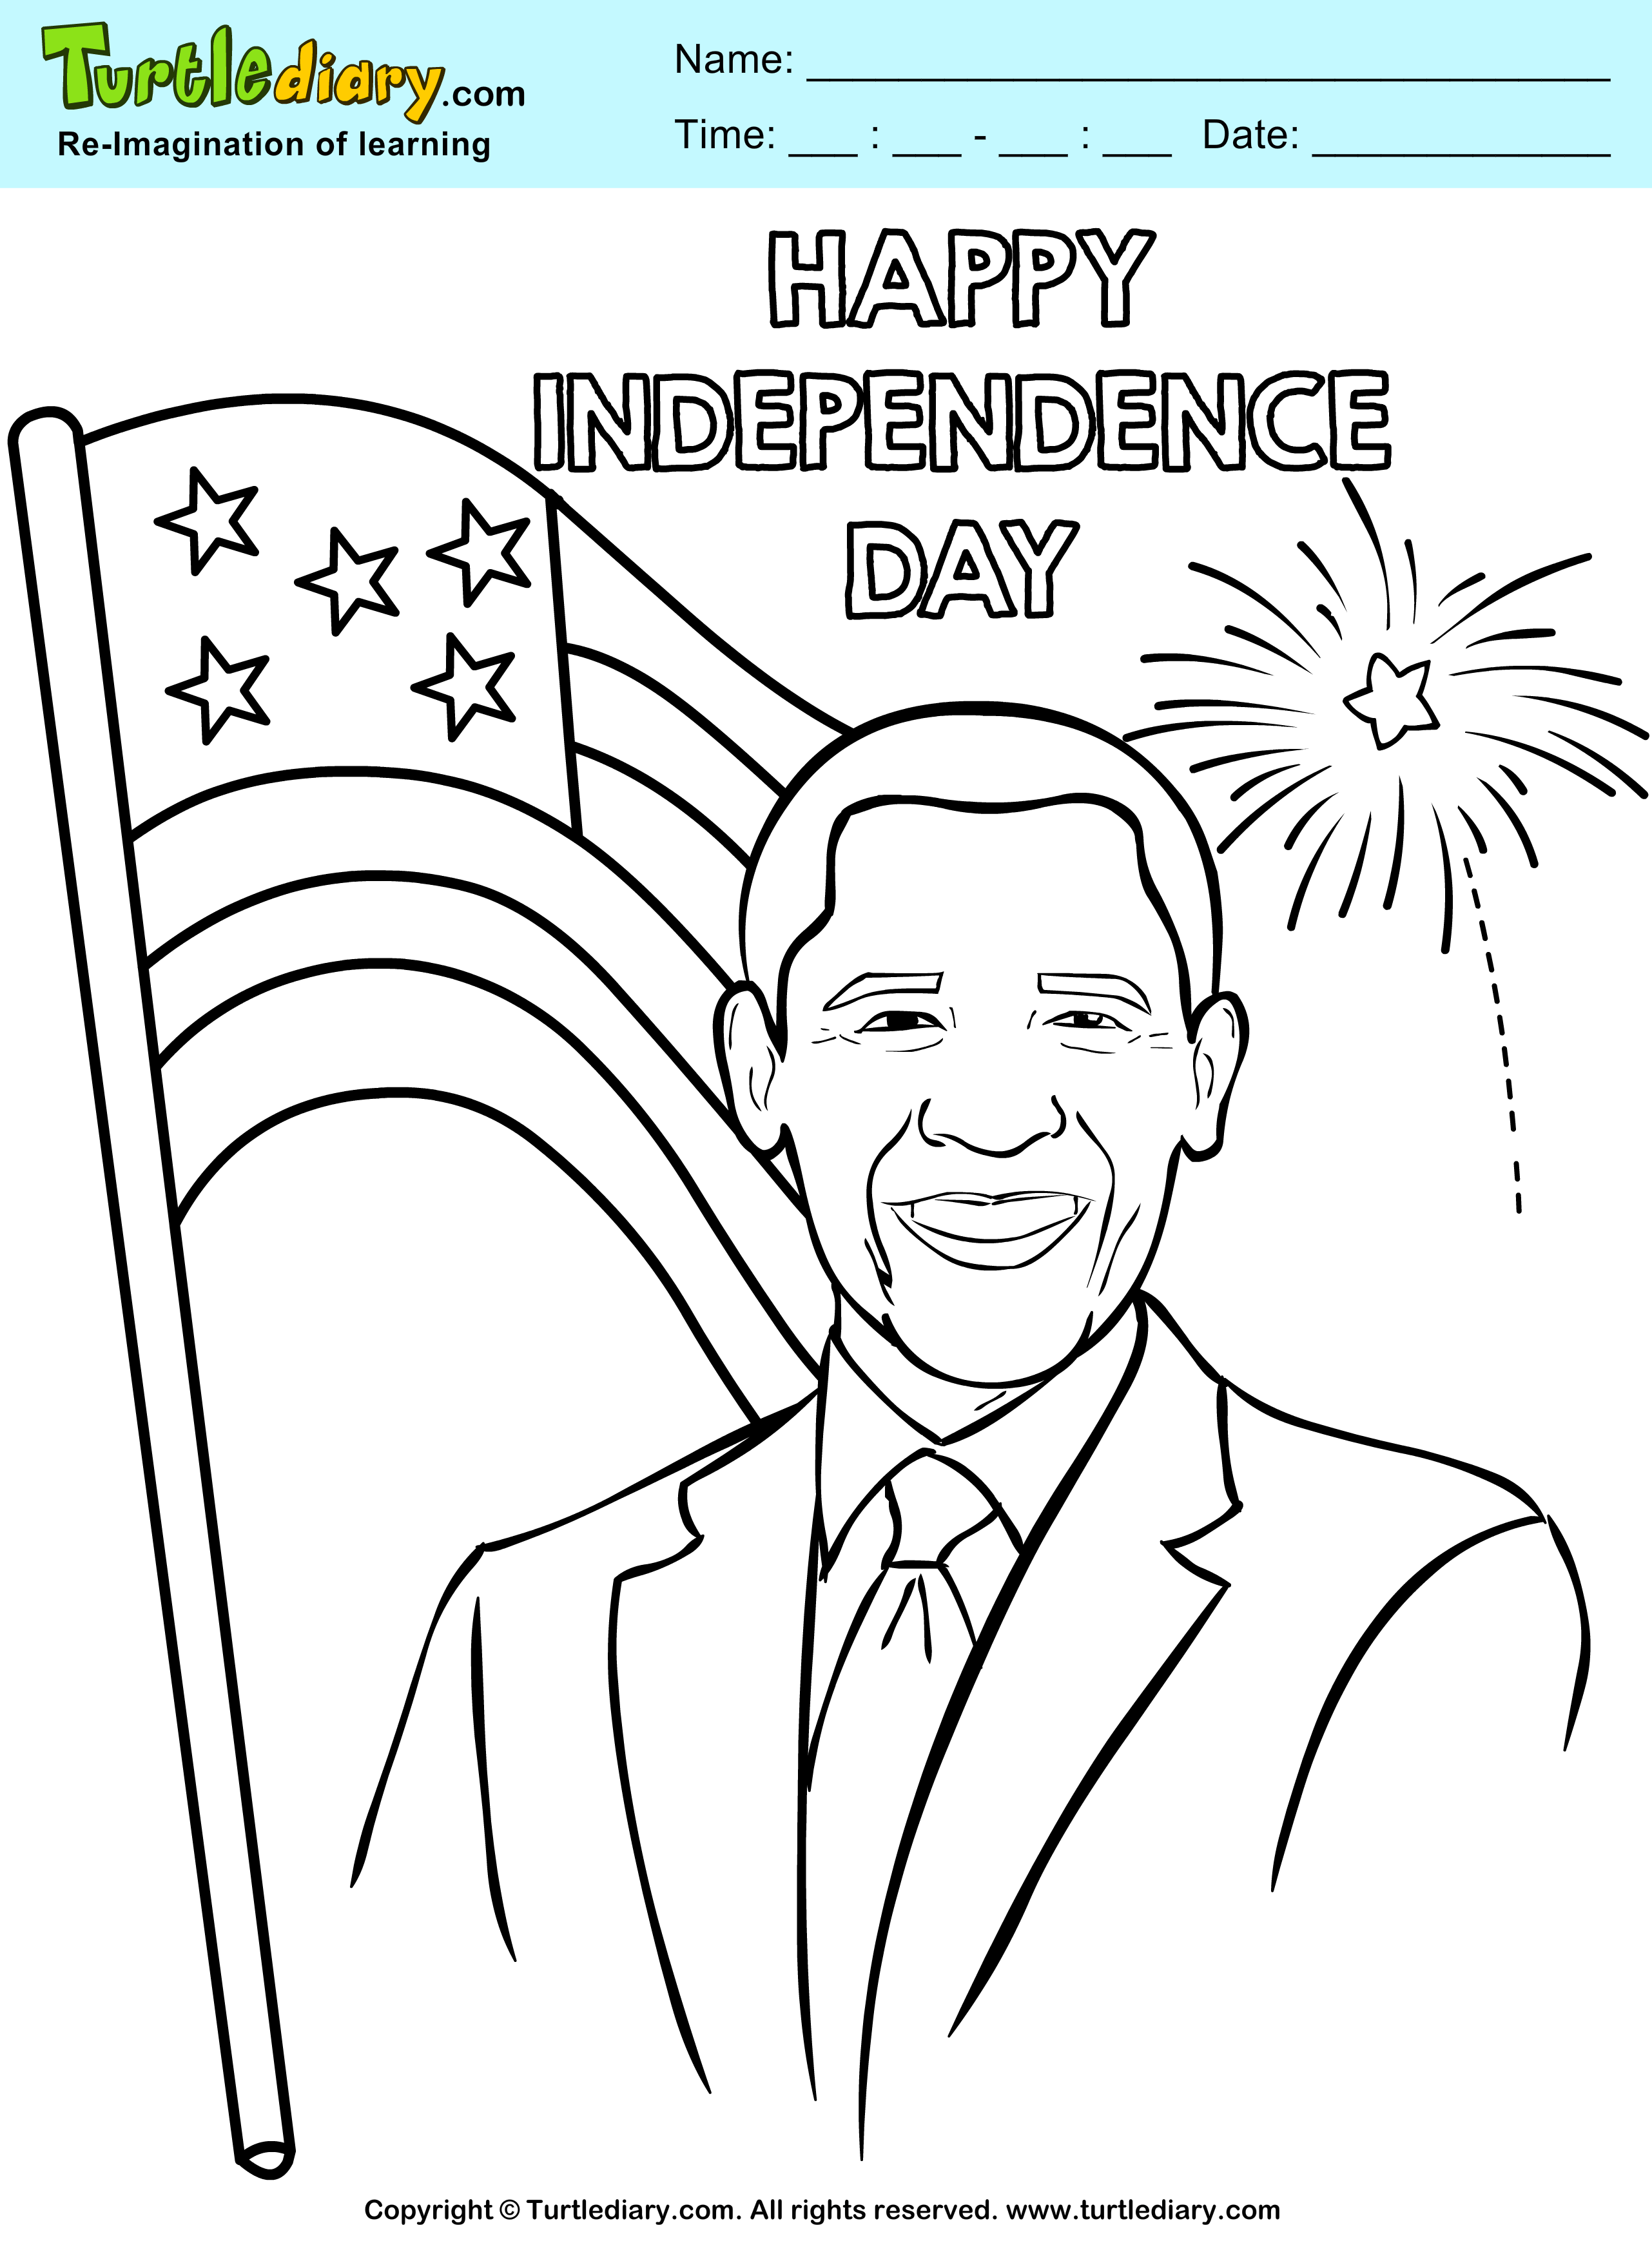 Happy Independence Day Coloring Page